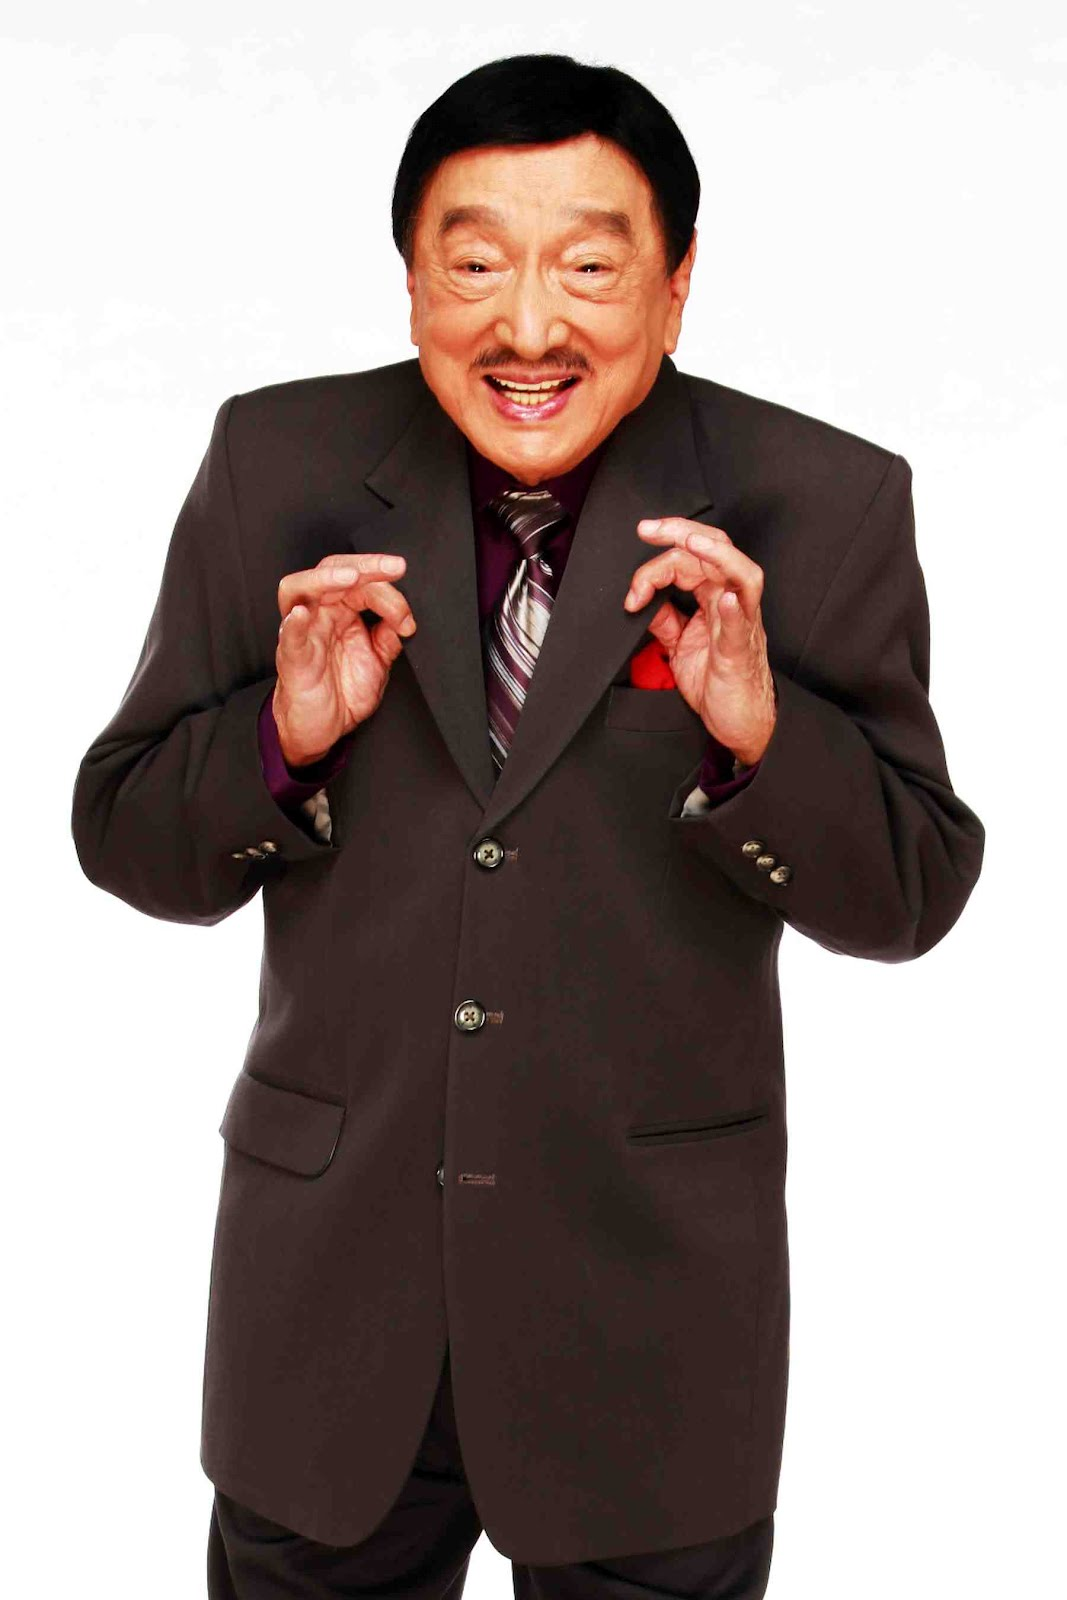 All Hail The Philippine's Comedy King Rodolfo Vera Quizon, Sr., OGH, Dolphy (July 25, 1928 – July 10, 2012)